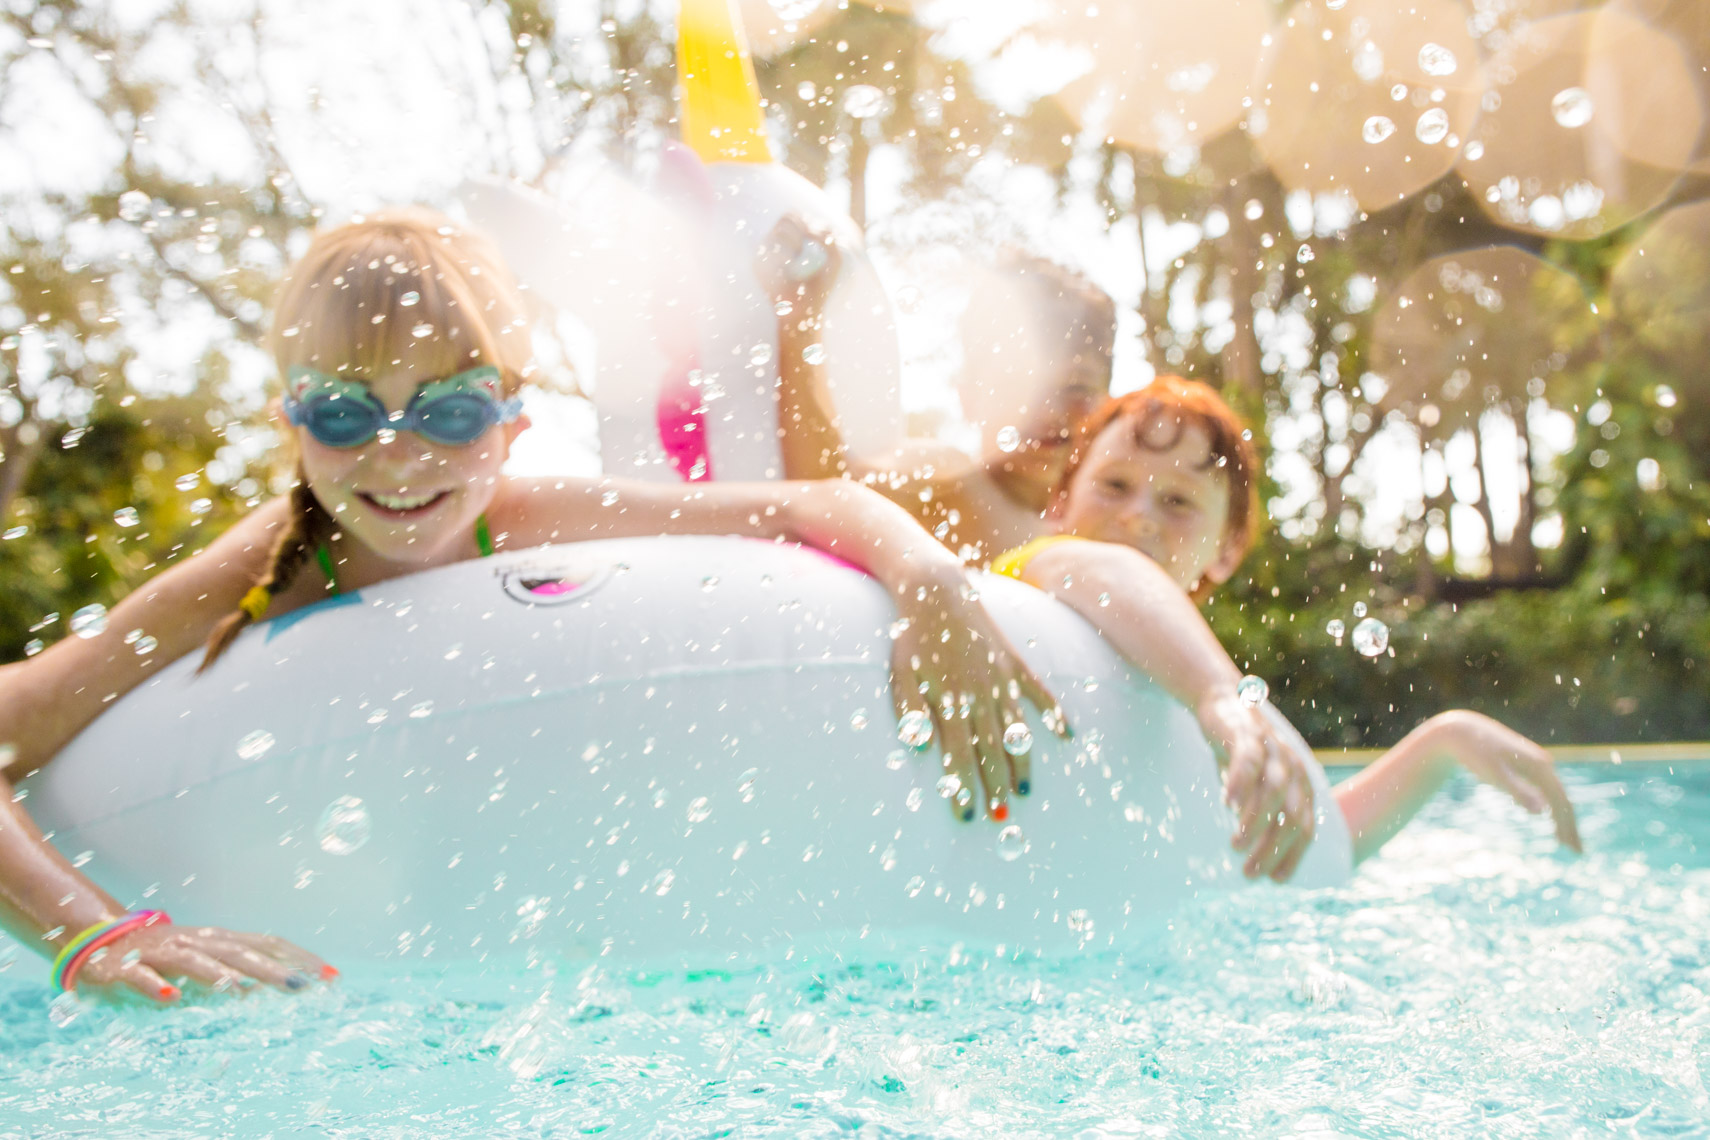 Cheery kids on pool float | Commercial Lifestyle Photographer